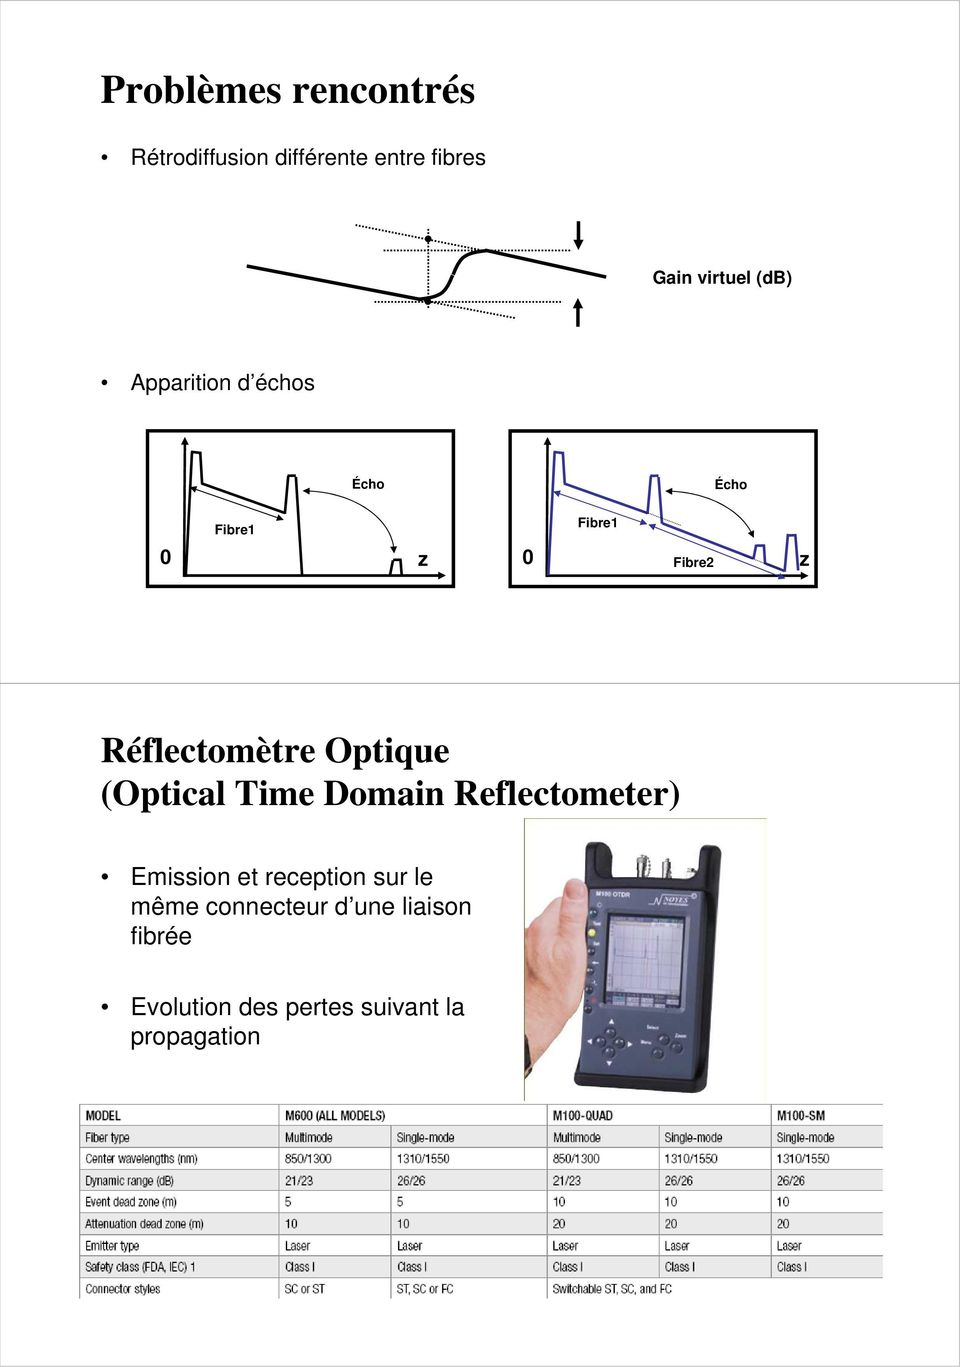 Réflectomètre Optique (Optical Time Domain Reflectometer) Emission et